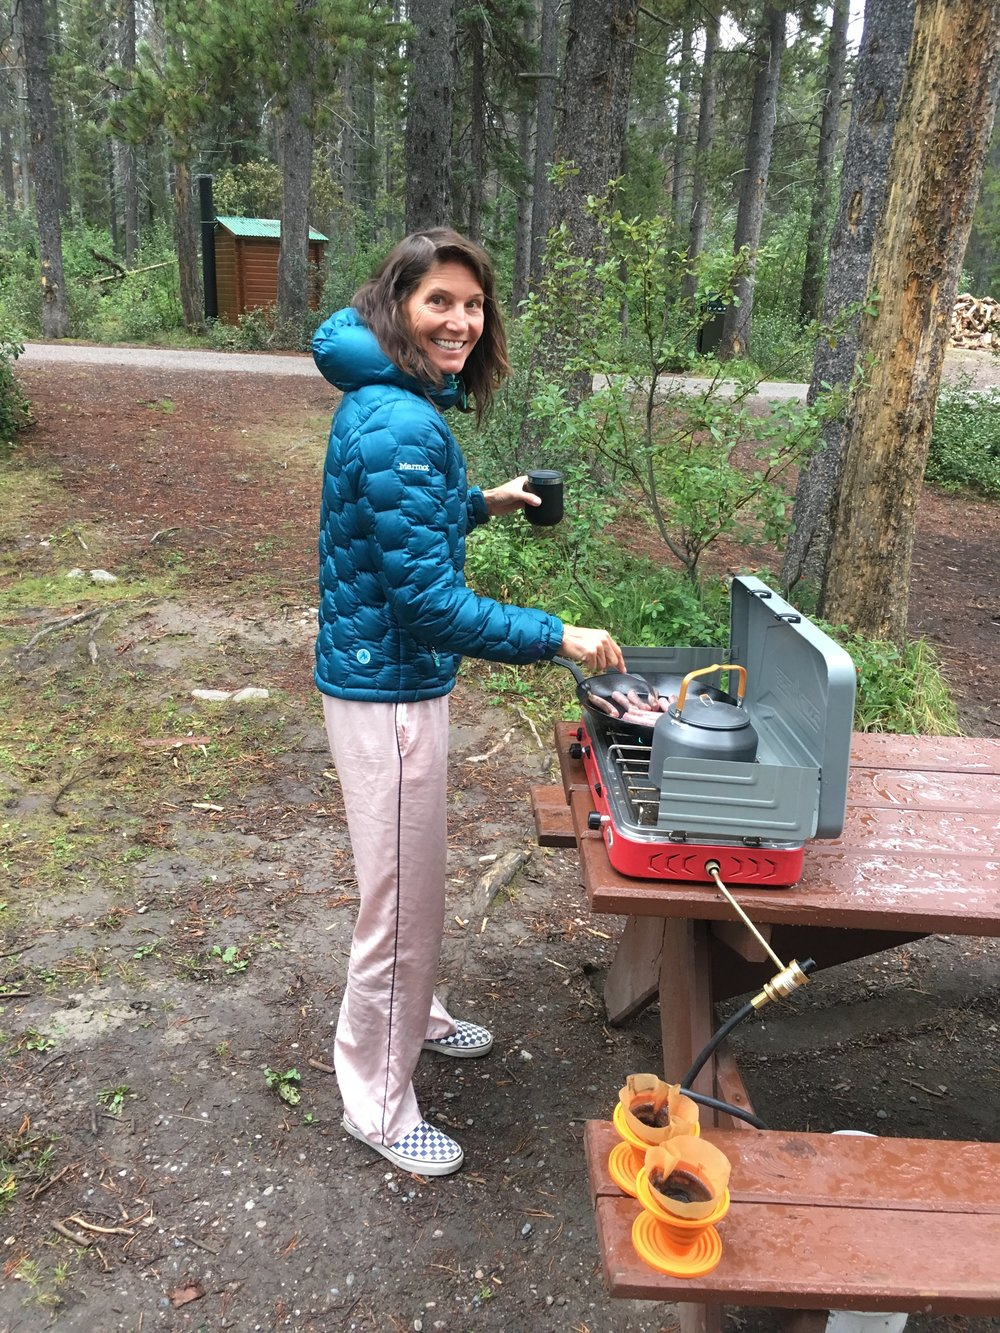 Cooking breakfast at Honeymoon lake - silk jammies, Vans, and a down jacket - true fashion! Top it off with bedhead - this is me most mornings!!!!